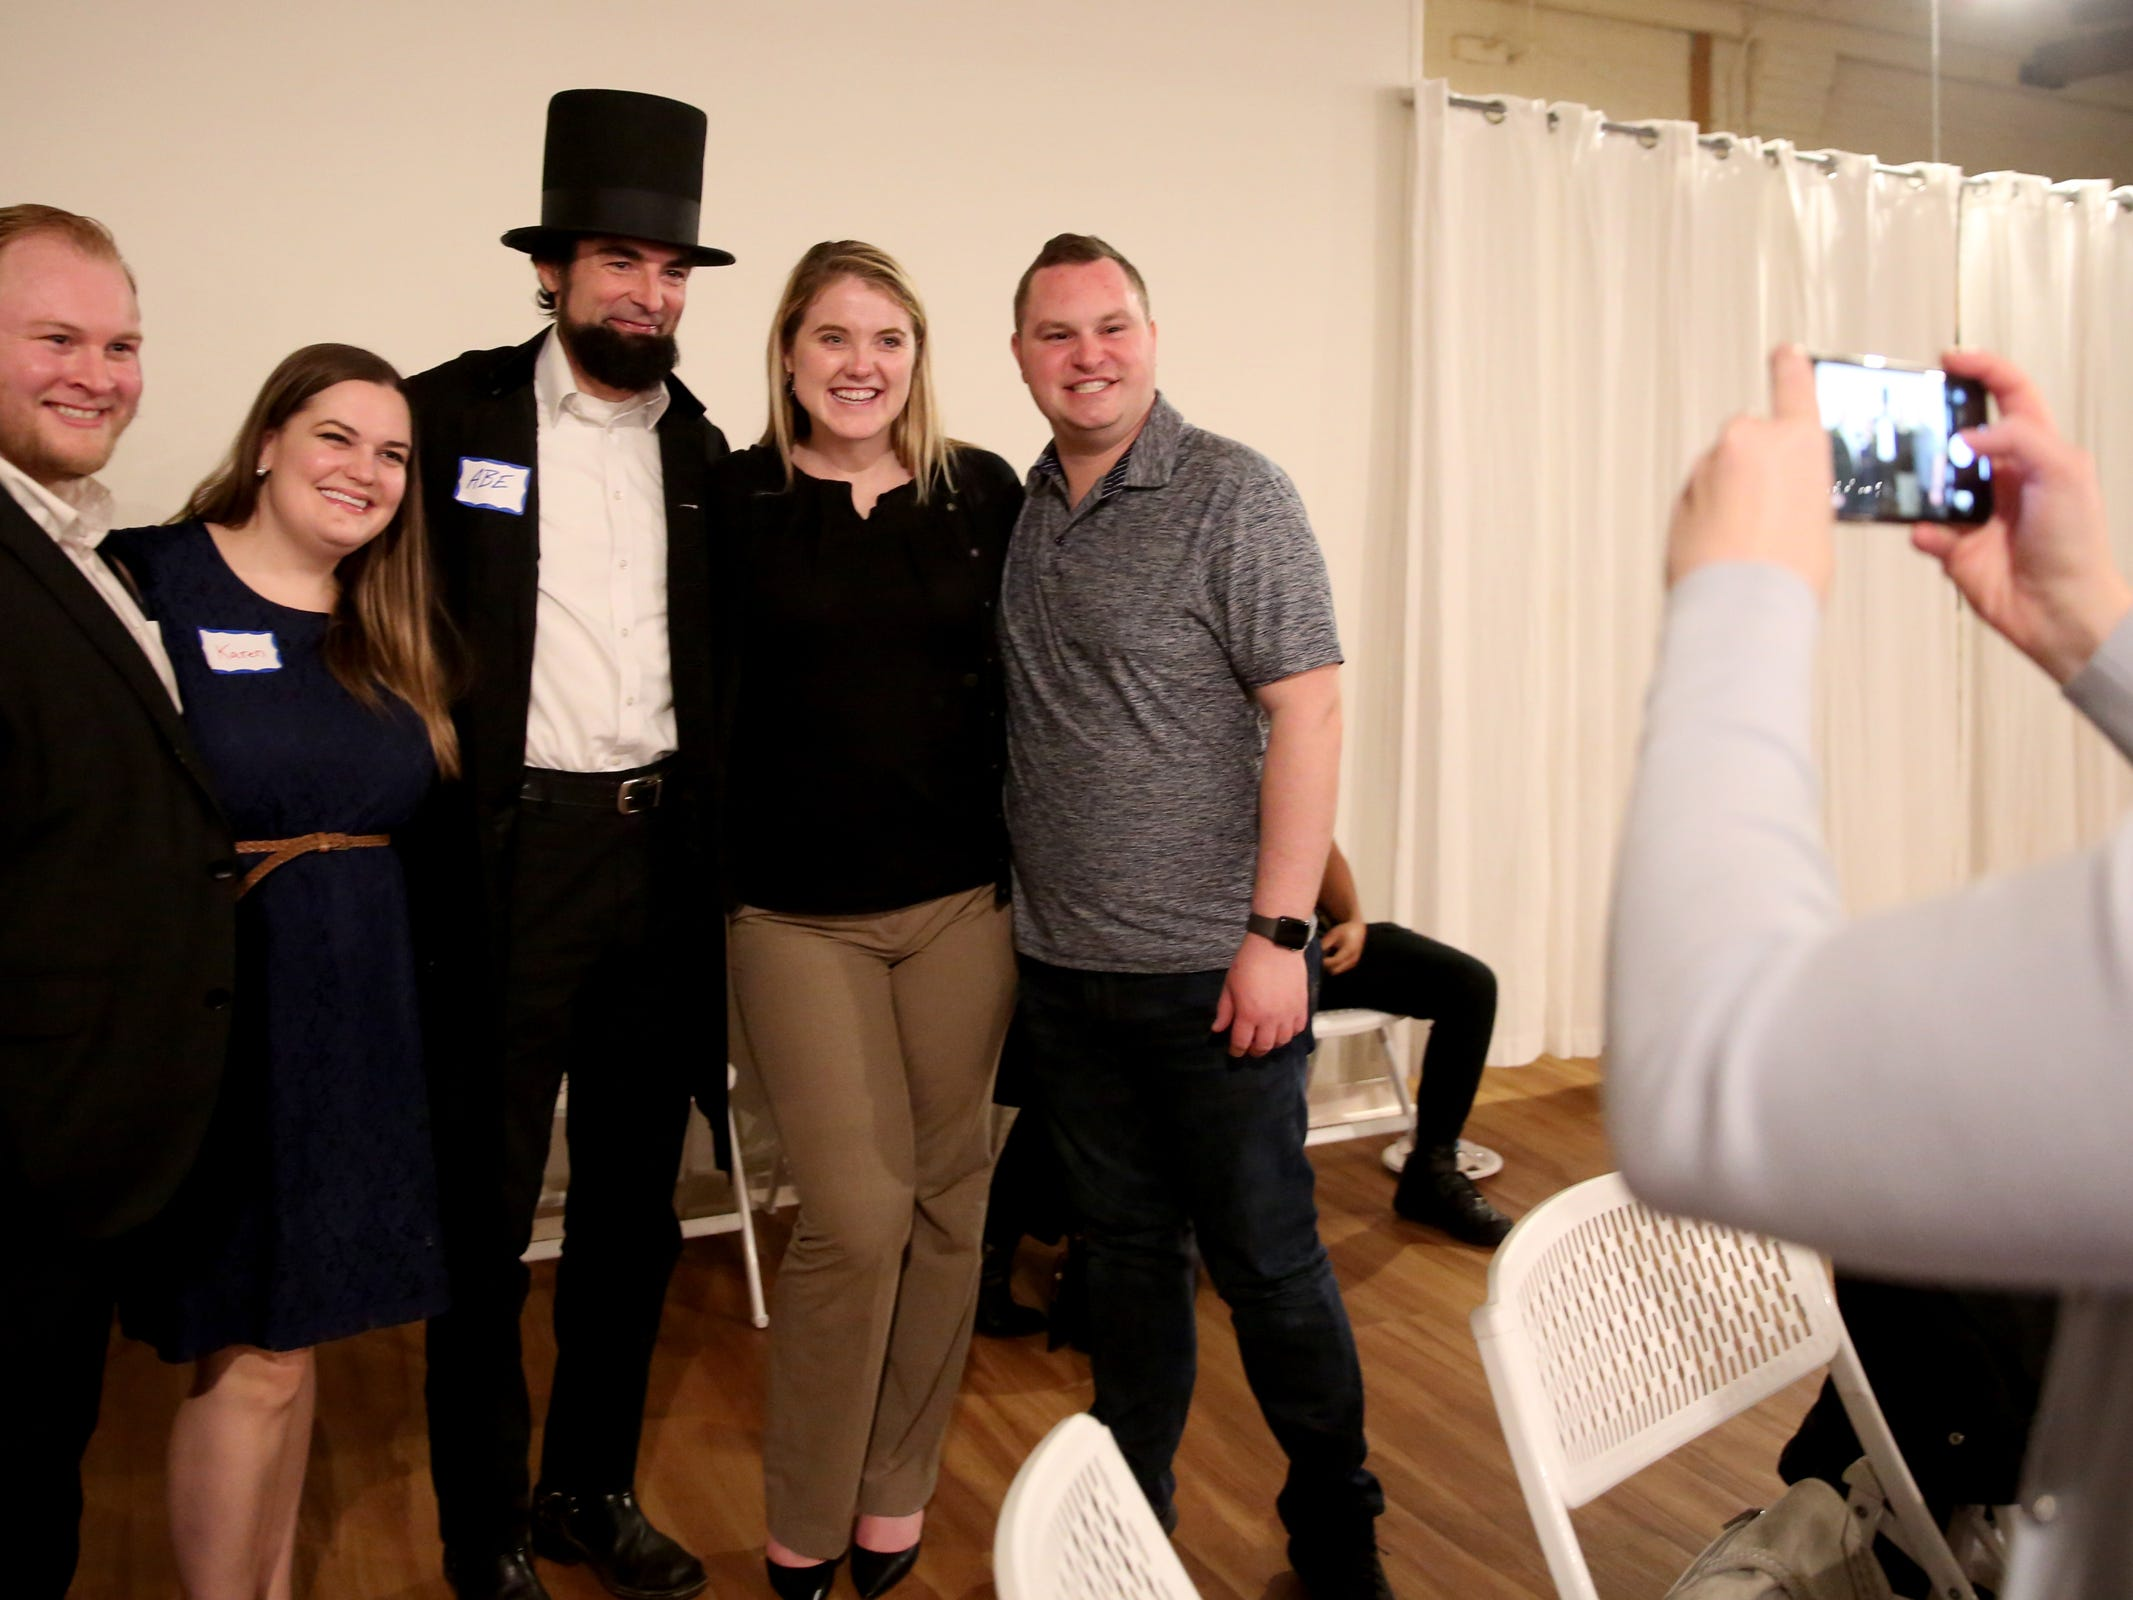 People take a photo with an Abraham Lincoln impersonator during an election night party hosted by Marion County Democrats and Polk County Democrats at the Willamette Heritage Center in Salem on Tuesday, Nov. 6, 2018.